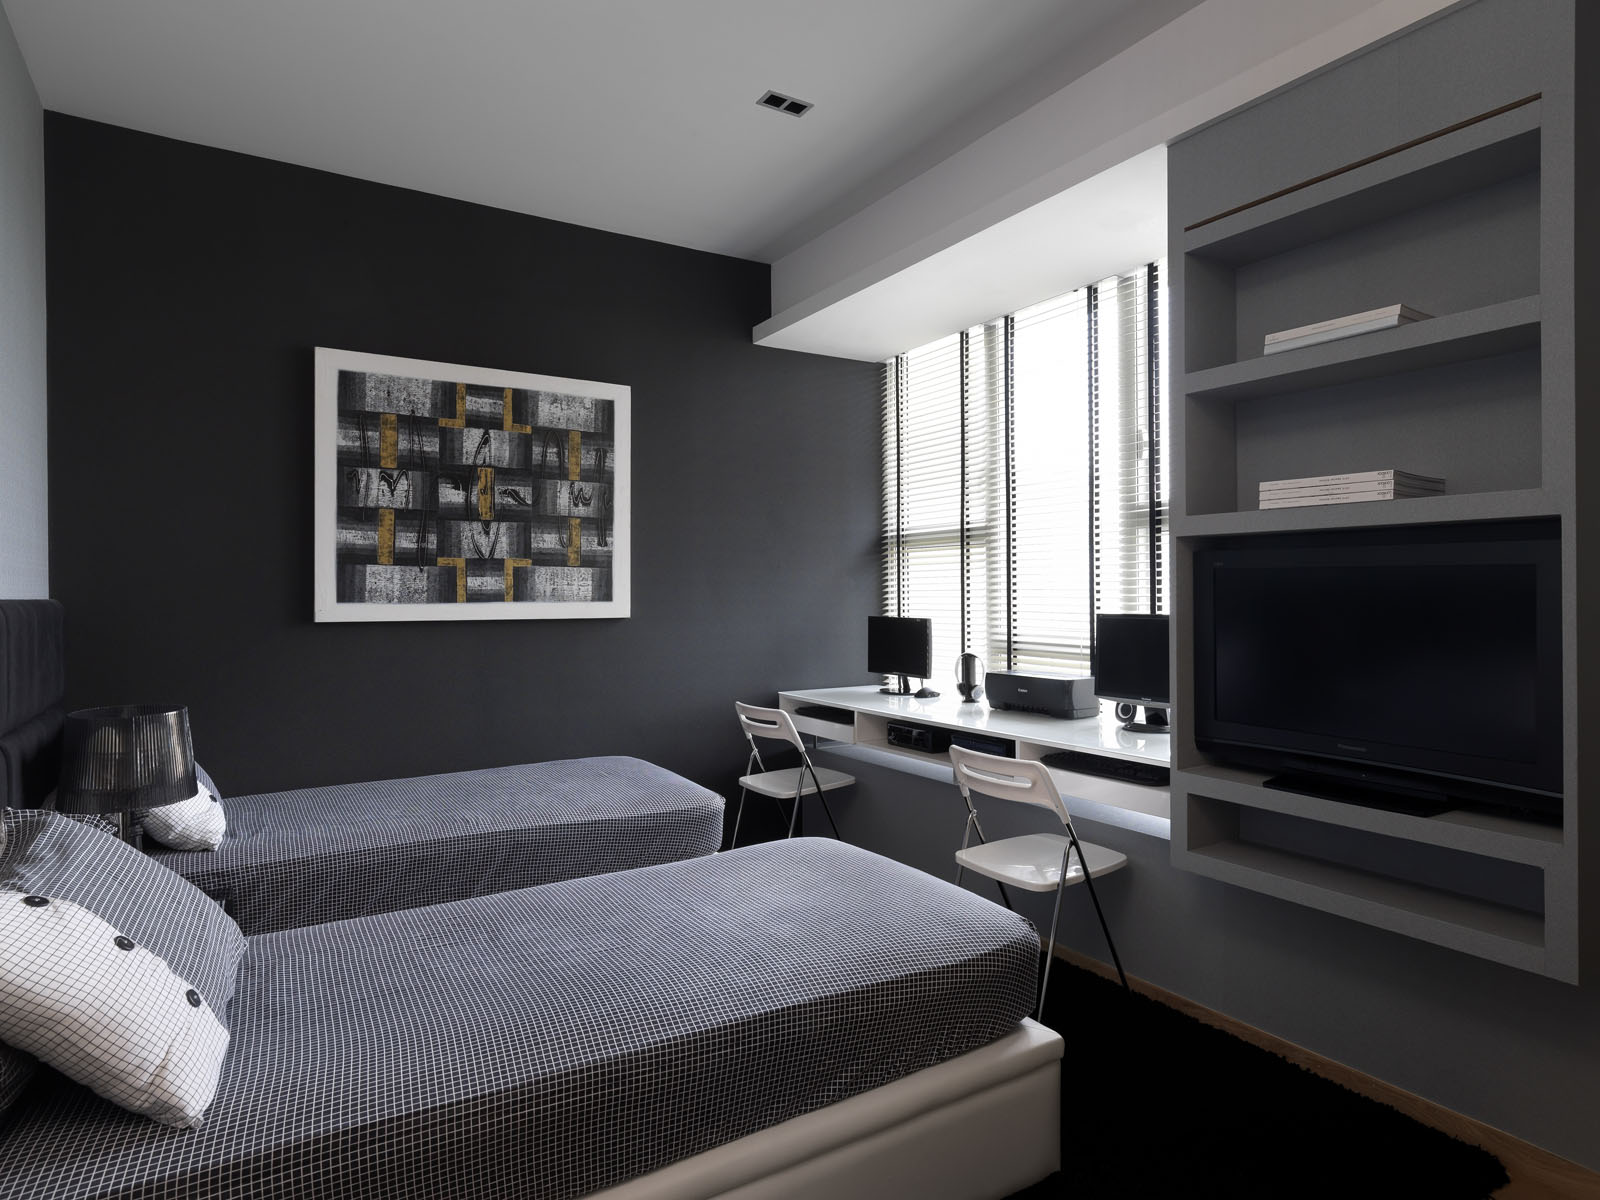 Bedroom Interior Design Singapore